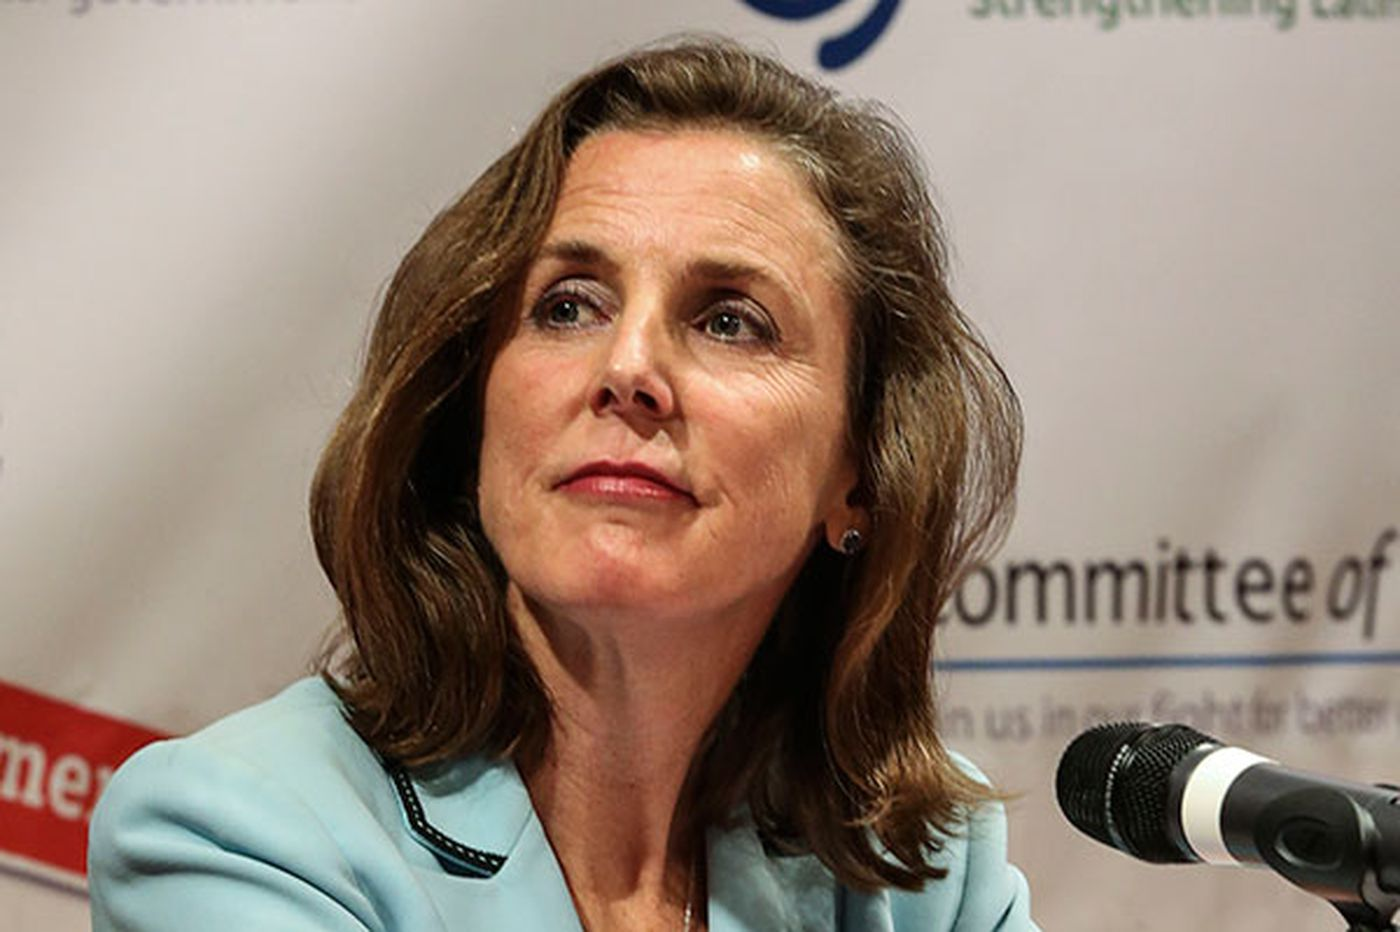 McGinty quitting Wolf's staff - is Senate run next?